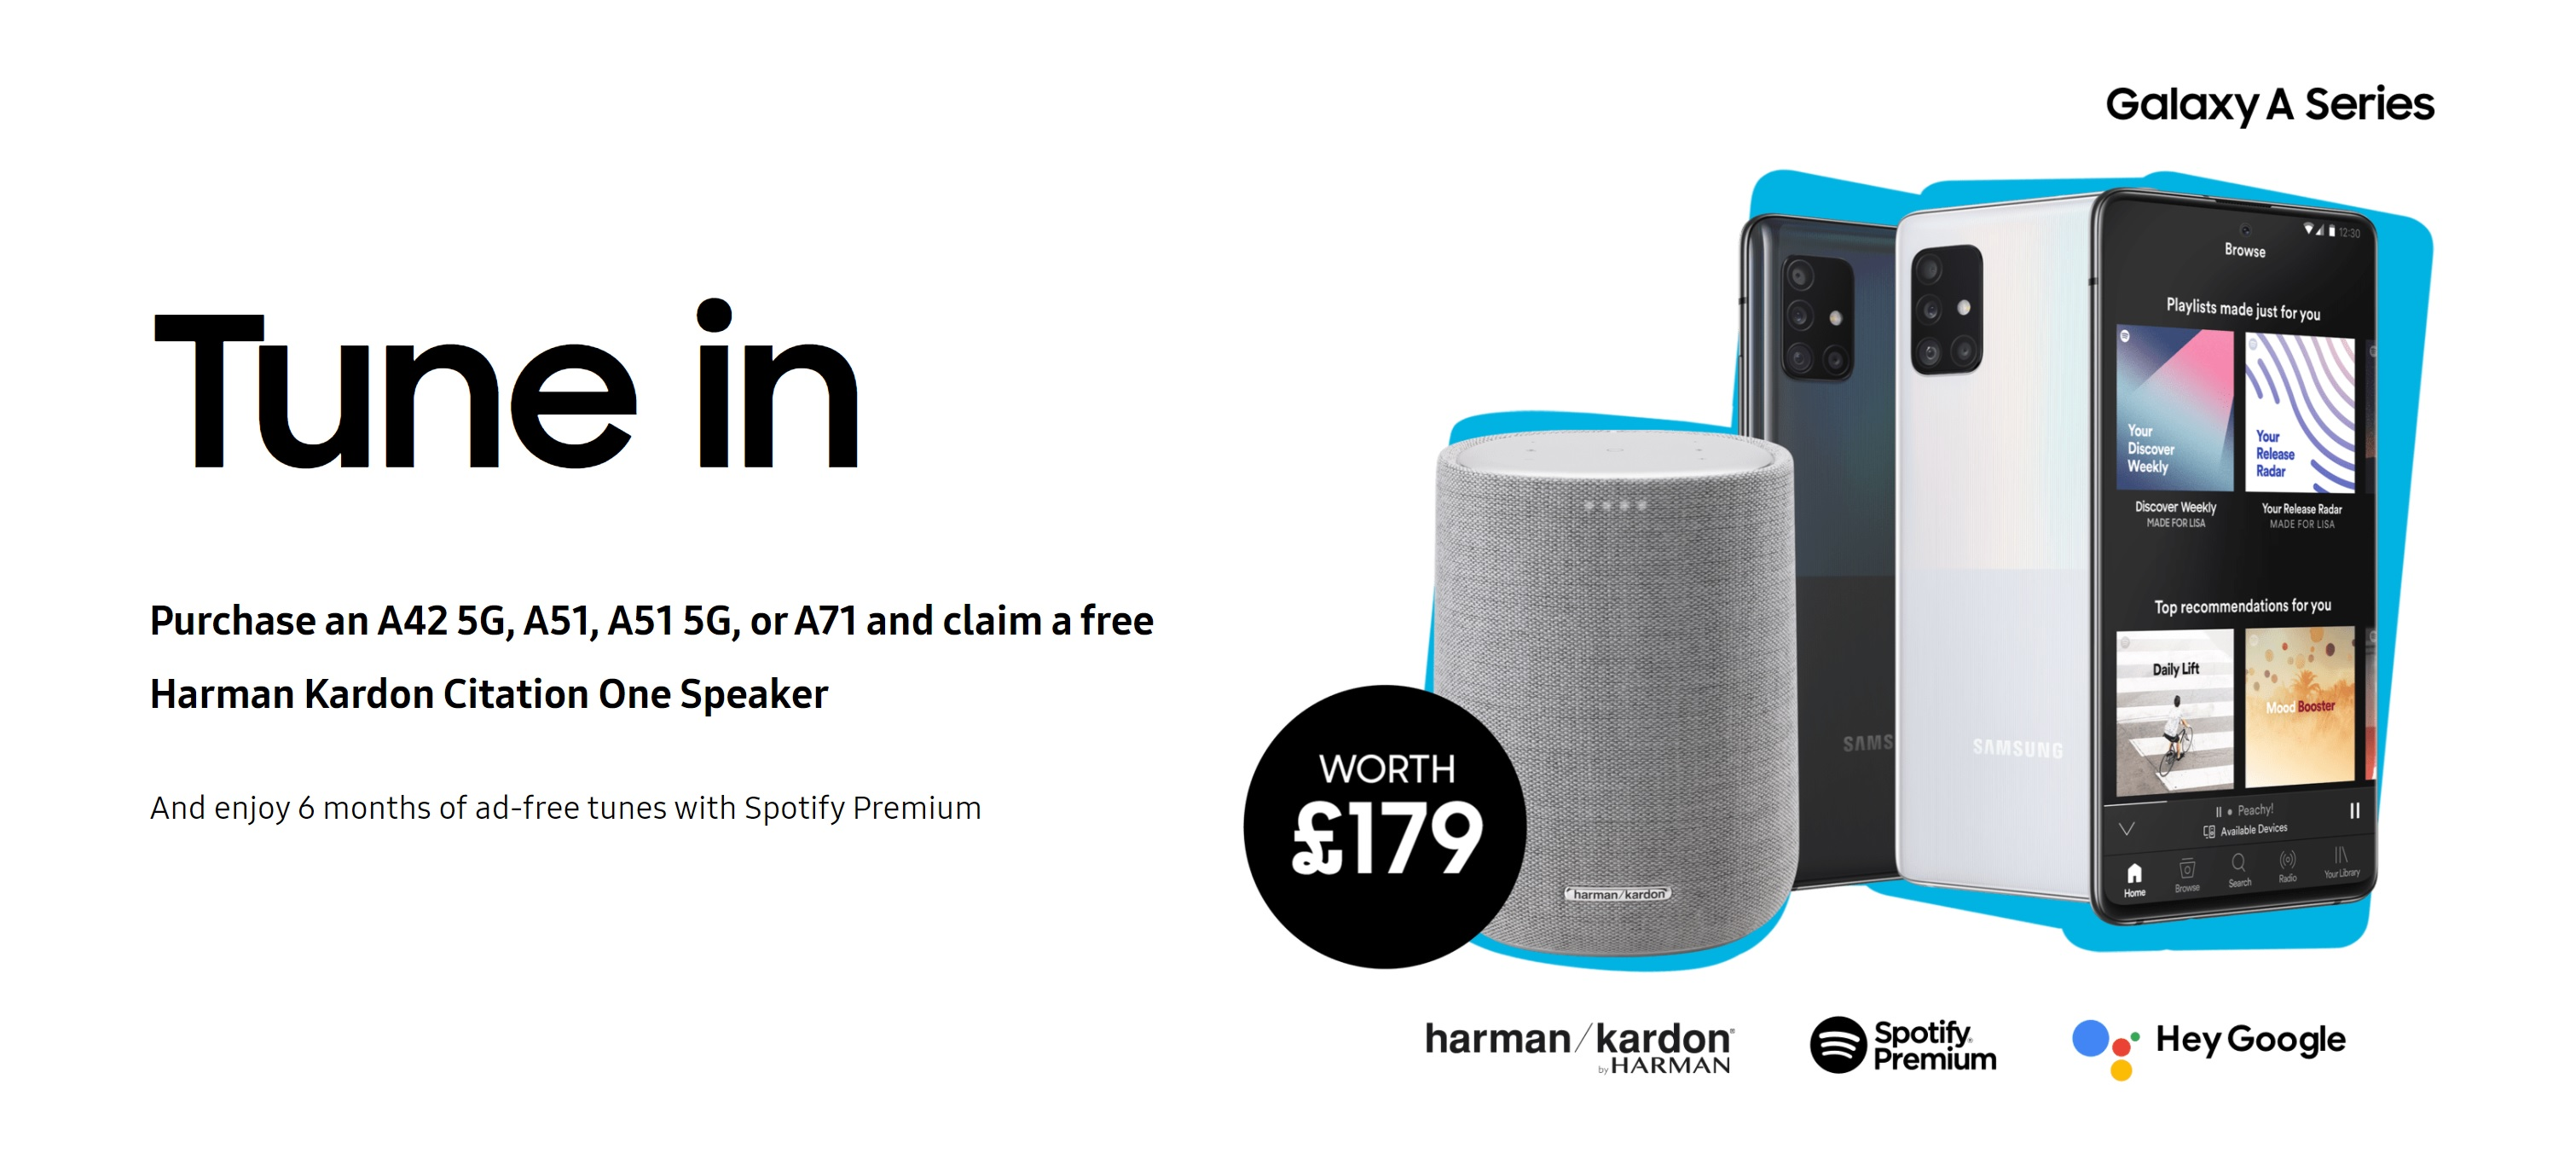 Samsung A71, A51, A51 5G and A42 5G deals with Free Harman Kardon Smart Speaker